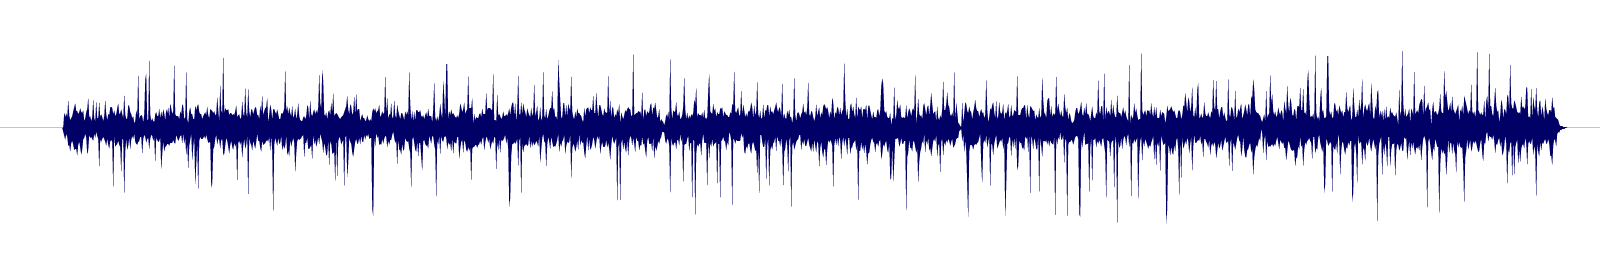 waveform of track #131817